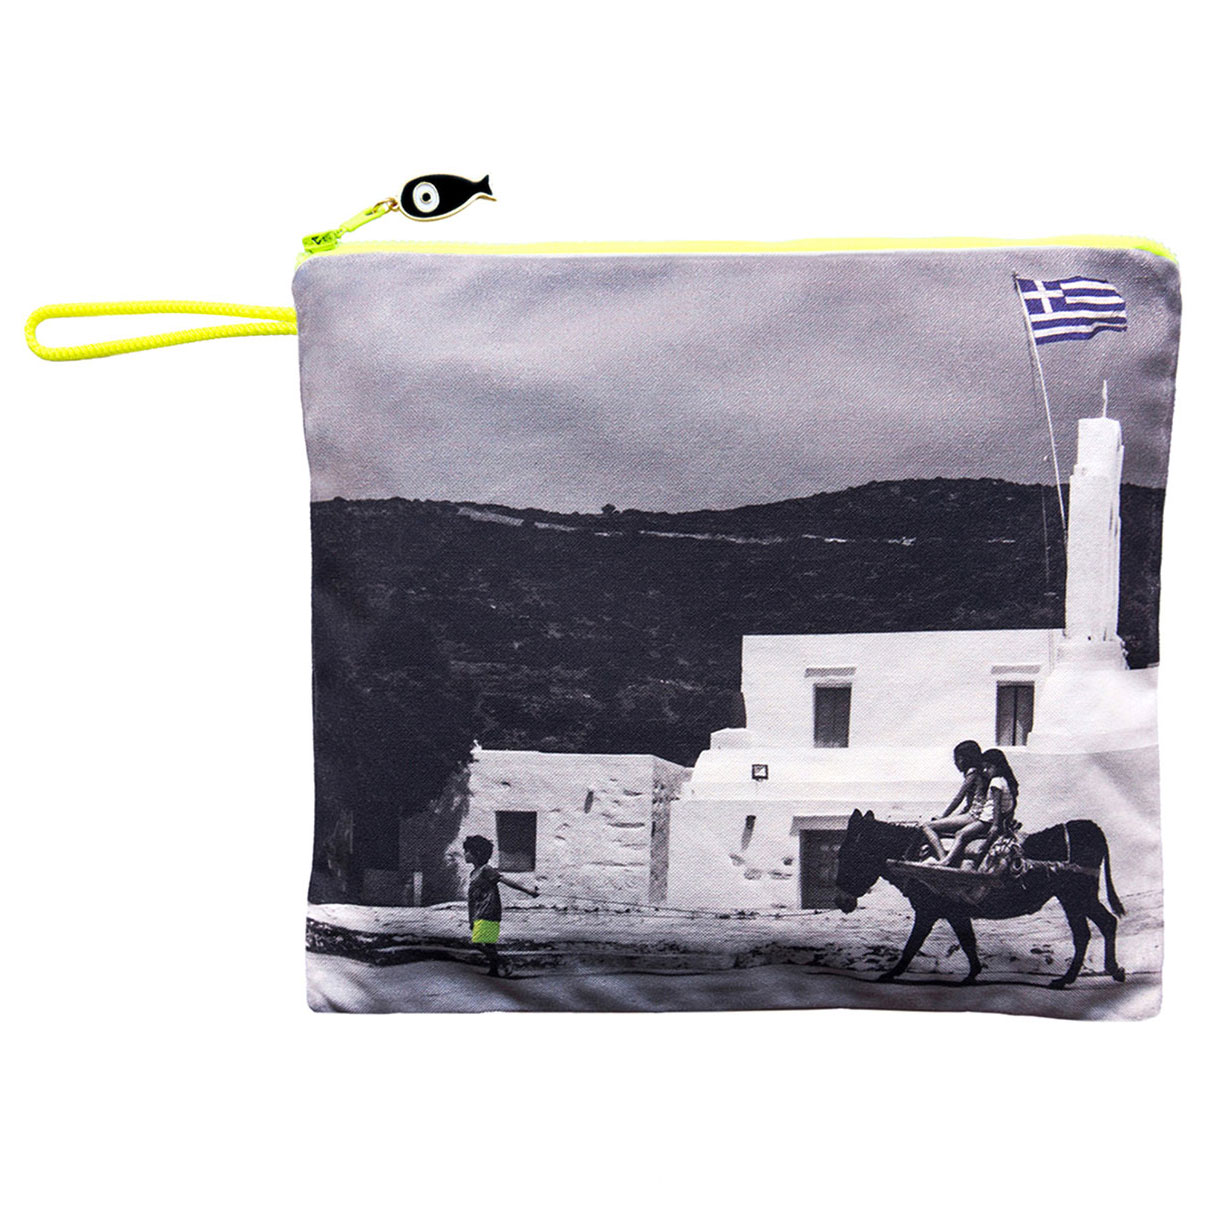 SIFNOS, Waterproof Summer Beach Canvas Pouch. Photo © Marina Vernicos.